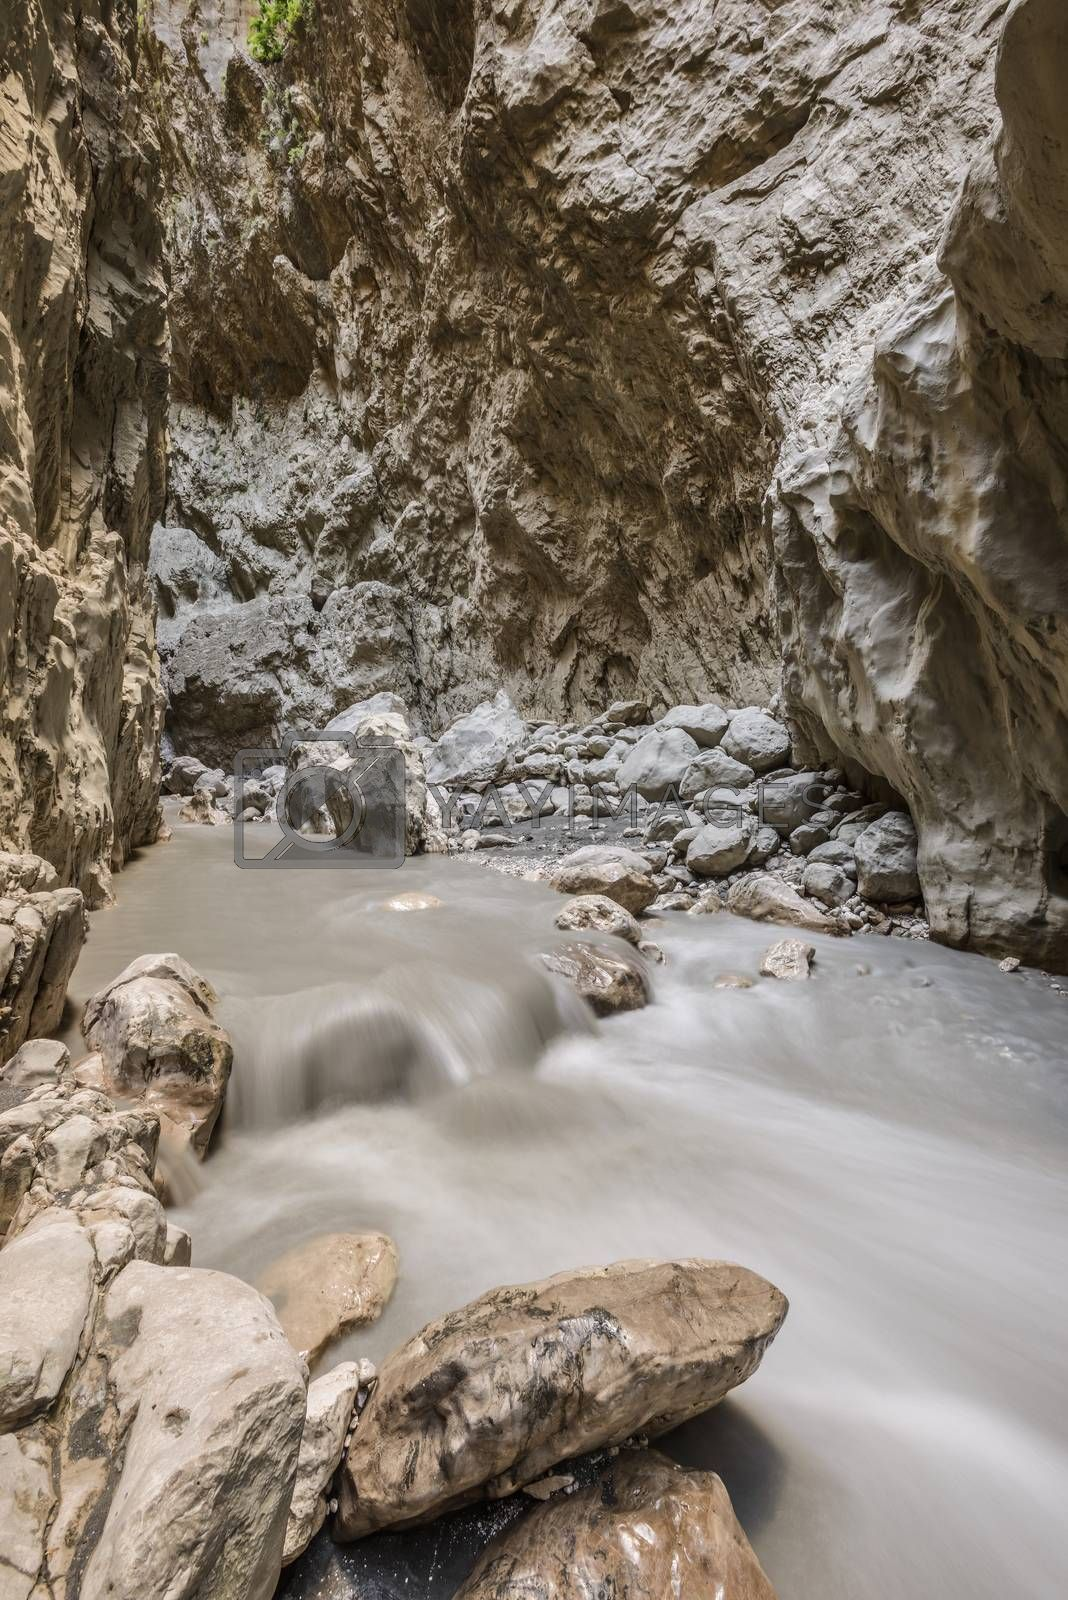 Saklikent Gorge, a slot canyon and tourist attraction in Southern Turkey near Fethiye